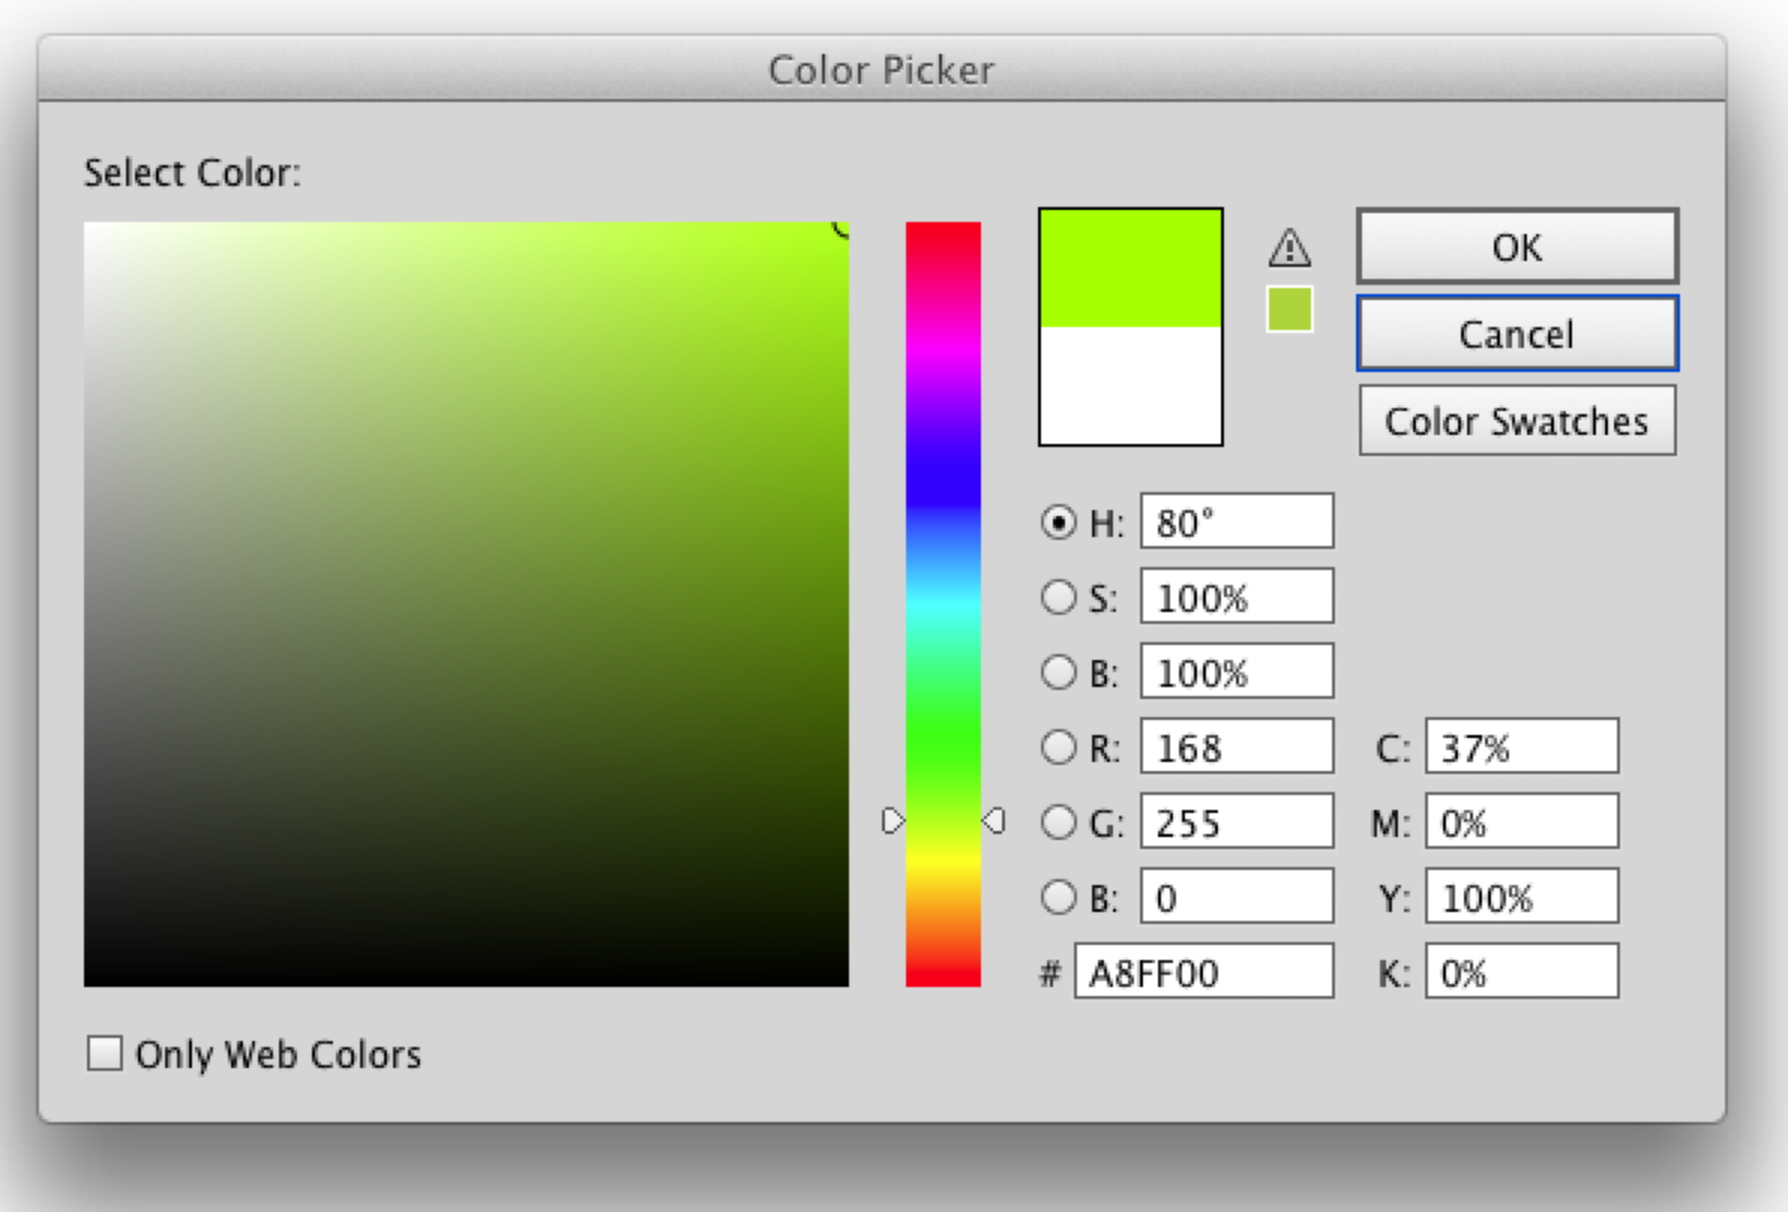 Ral Cmyk Why Are All My Colors Dull In Illustrator Cs6 Graphic Design